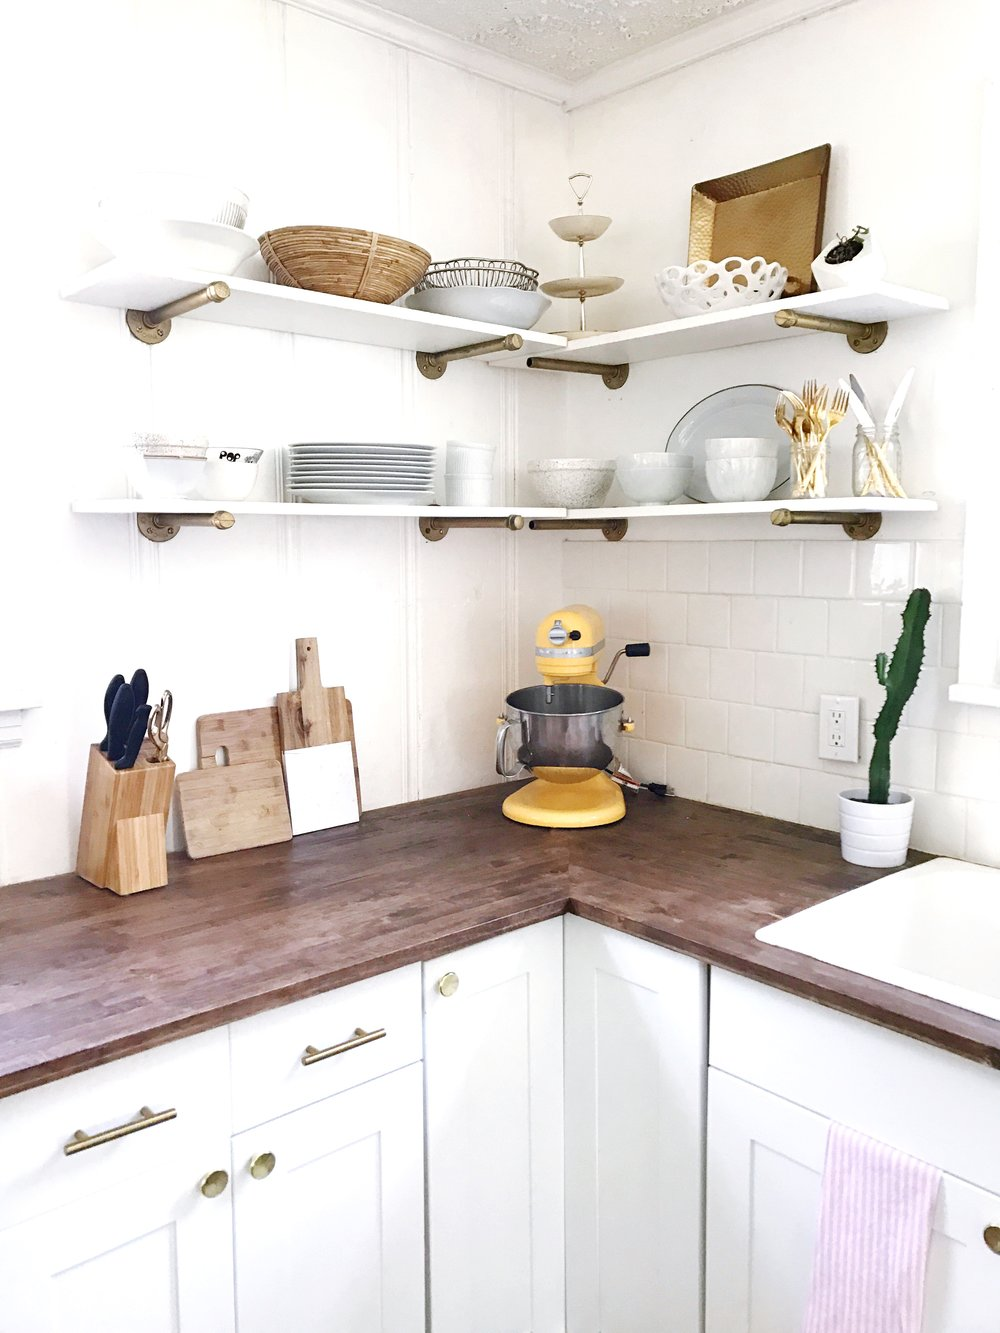 we carried the gold accents through out the house with the hardware on the cabinets. It took me a while to find the perfect ones that weren't super expensive:) I found these on Amazon!